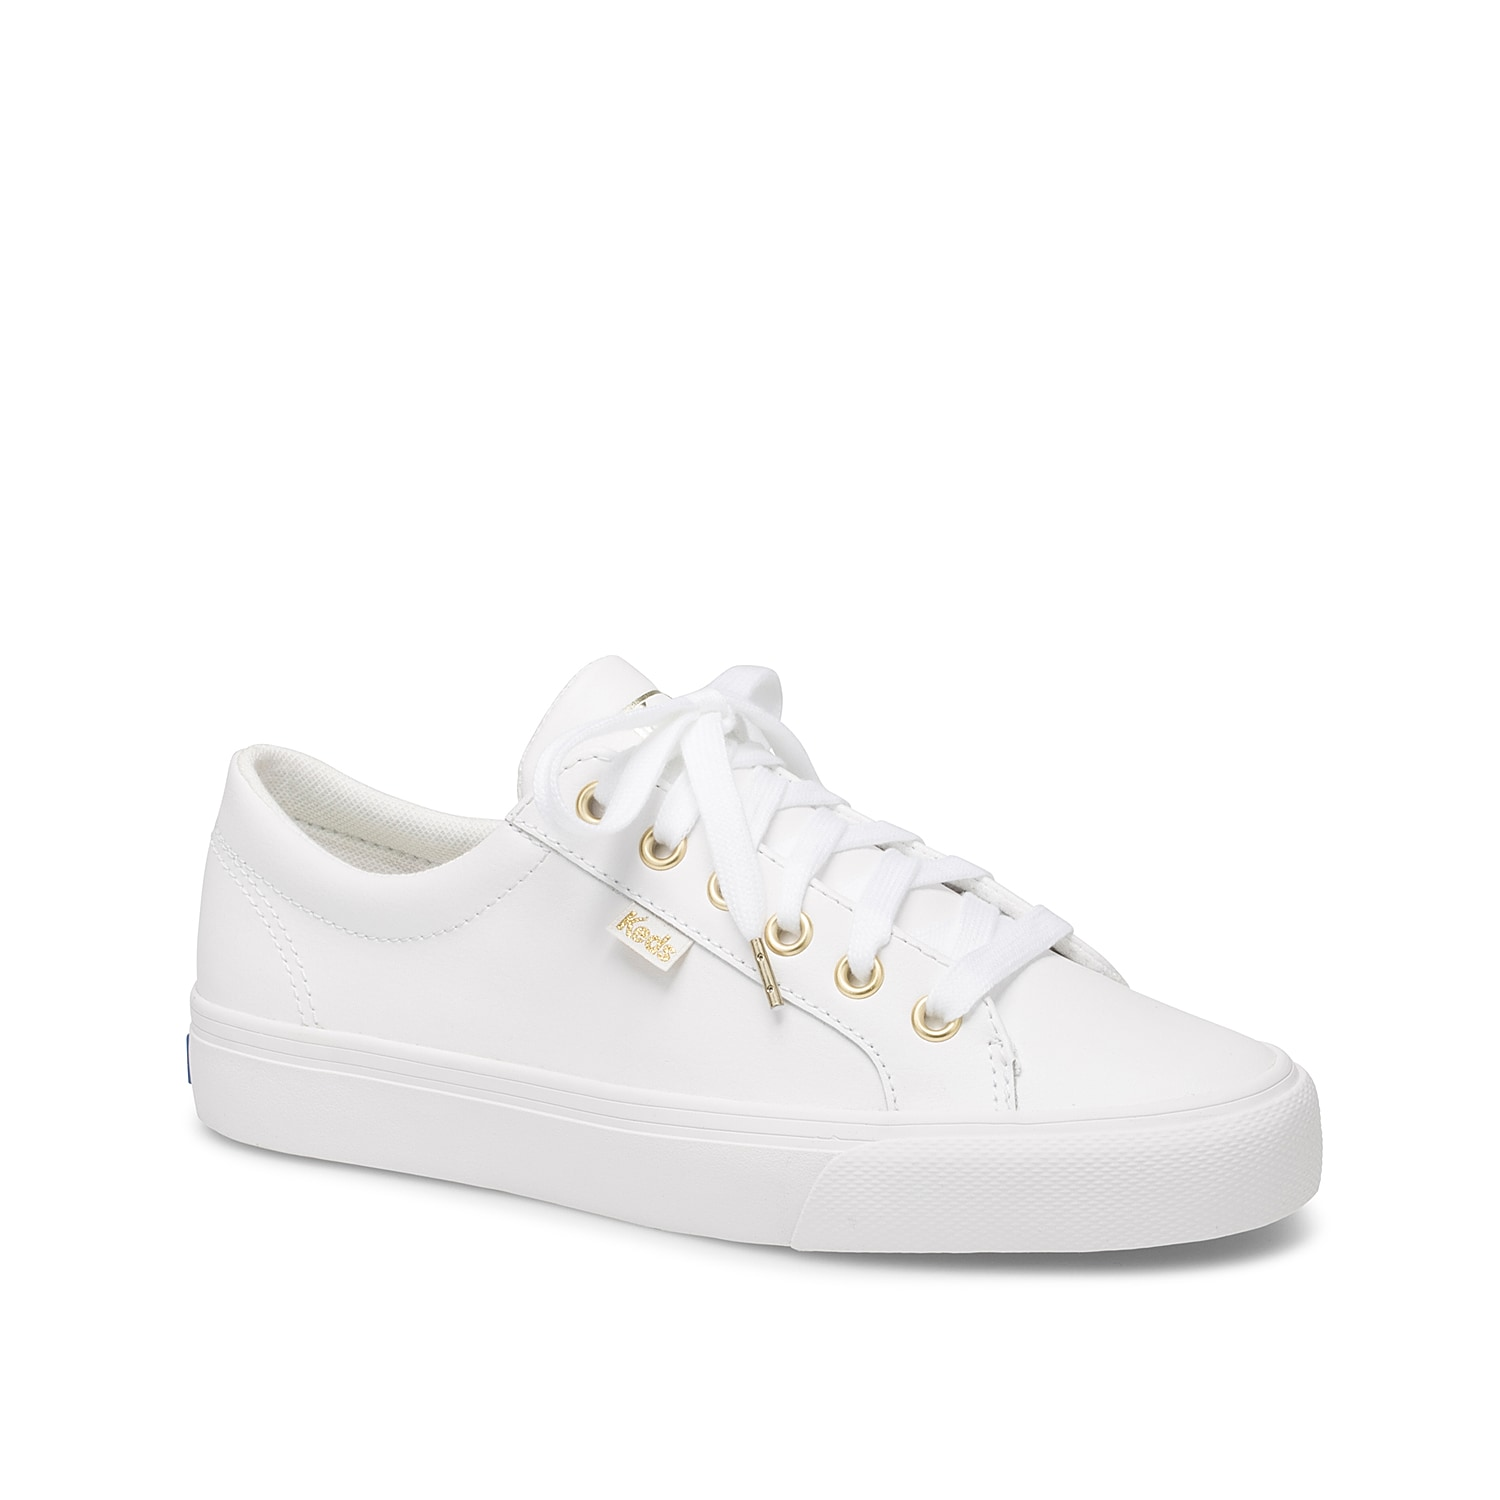 Nail that sporty, streamlined look by donning the Keds Jumpkick sneaker. This lace-up profile features a supportive pique lining and traction-enhancing rubber outsole.